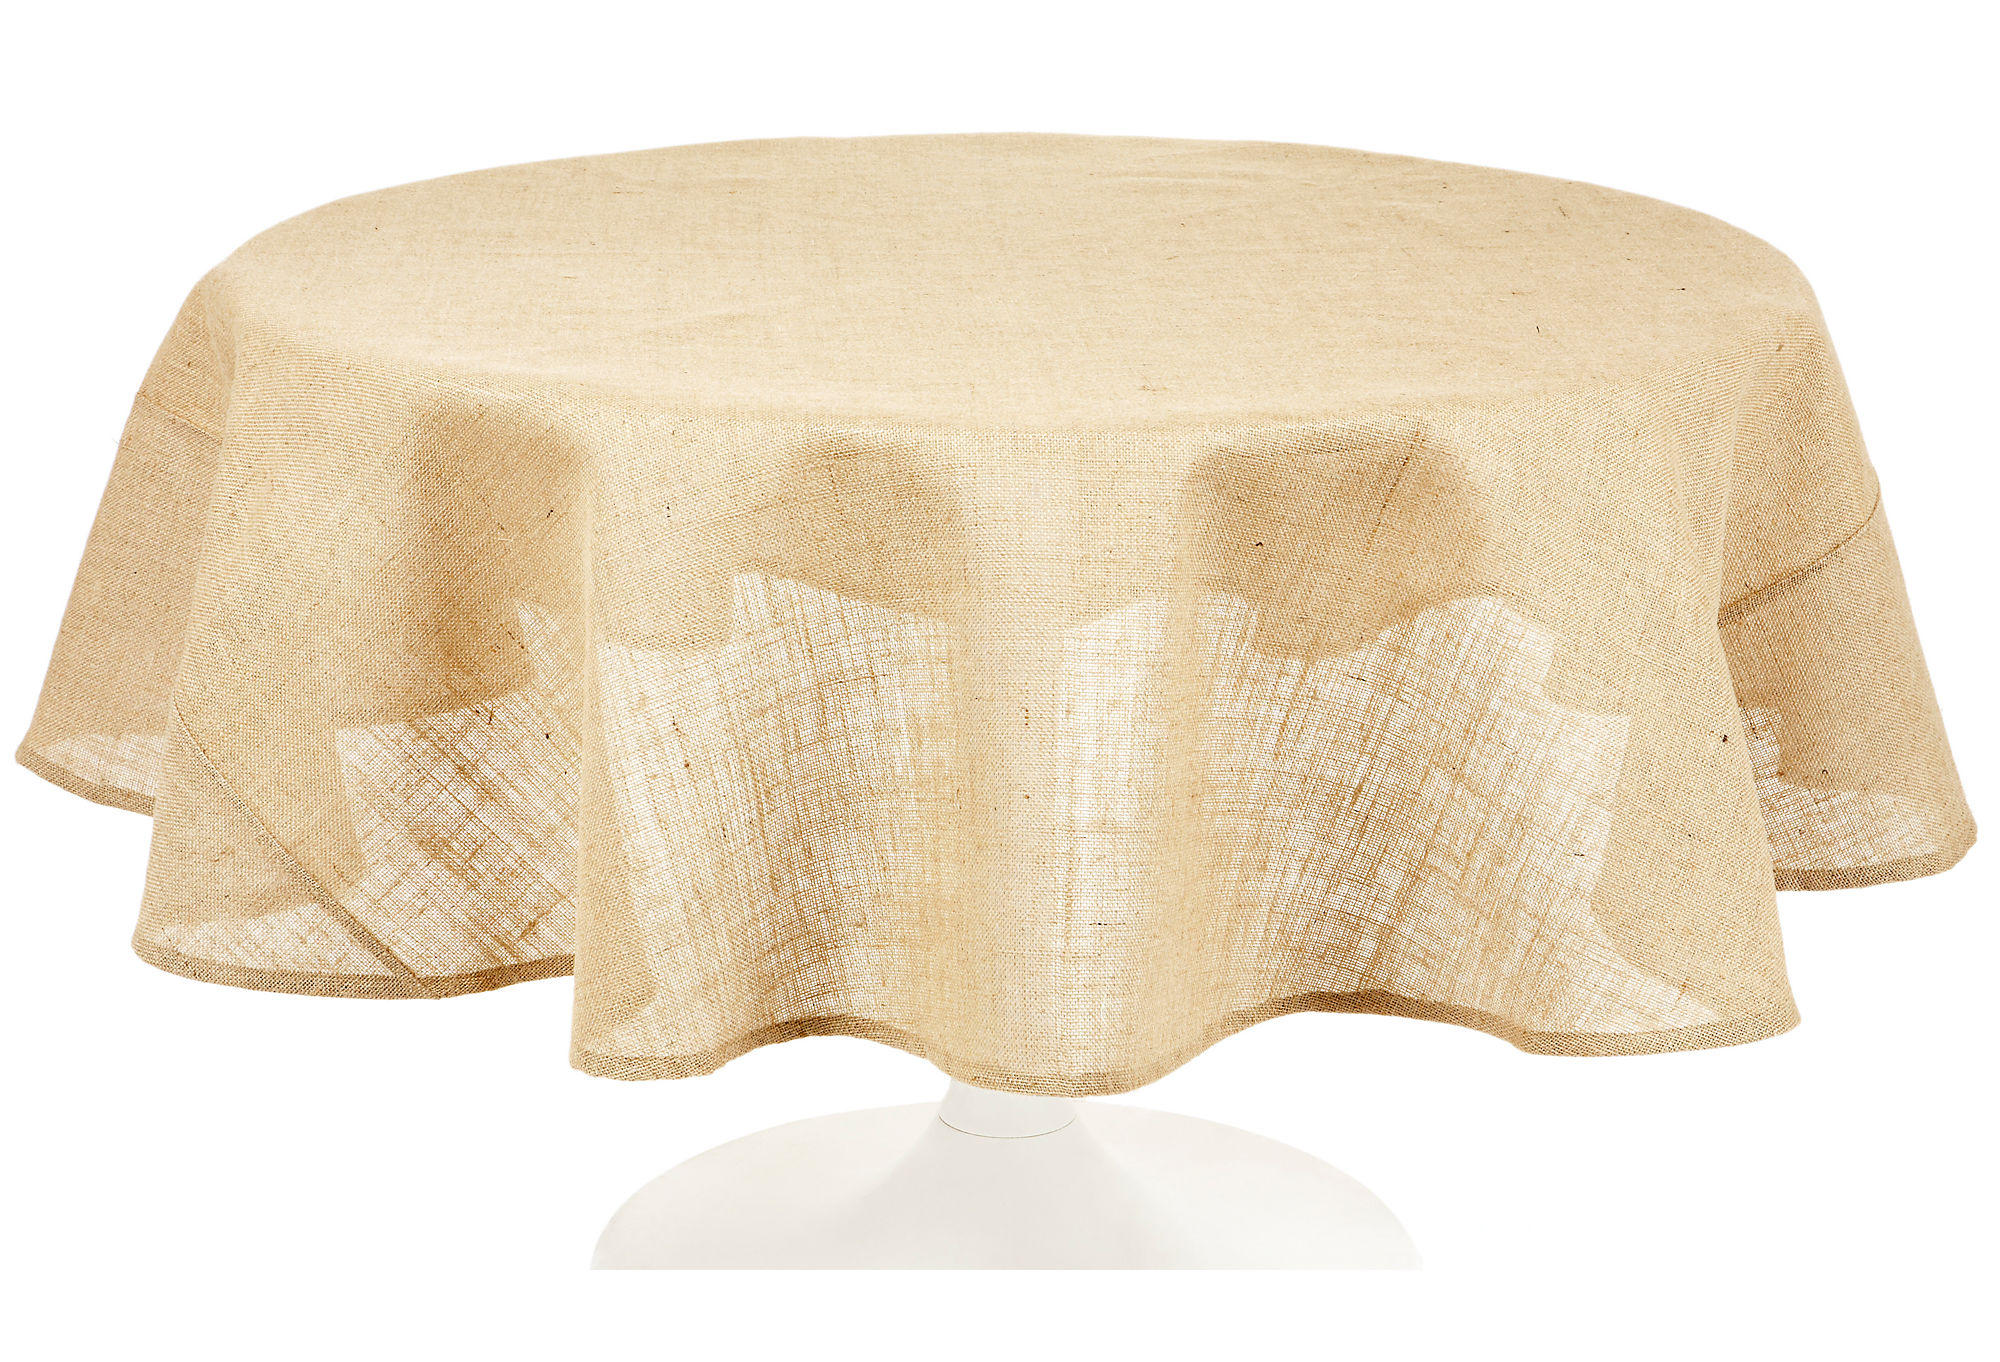 Metal Kitchen Canisters Burlap Round Tablecloth 90 Quot Tablecloths From One Kings Lane